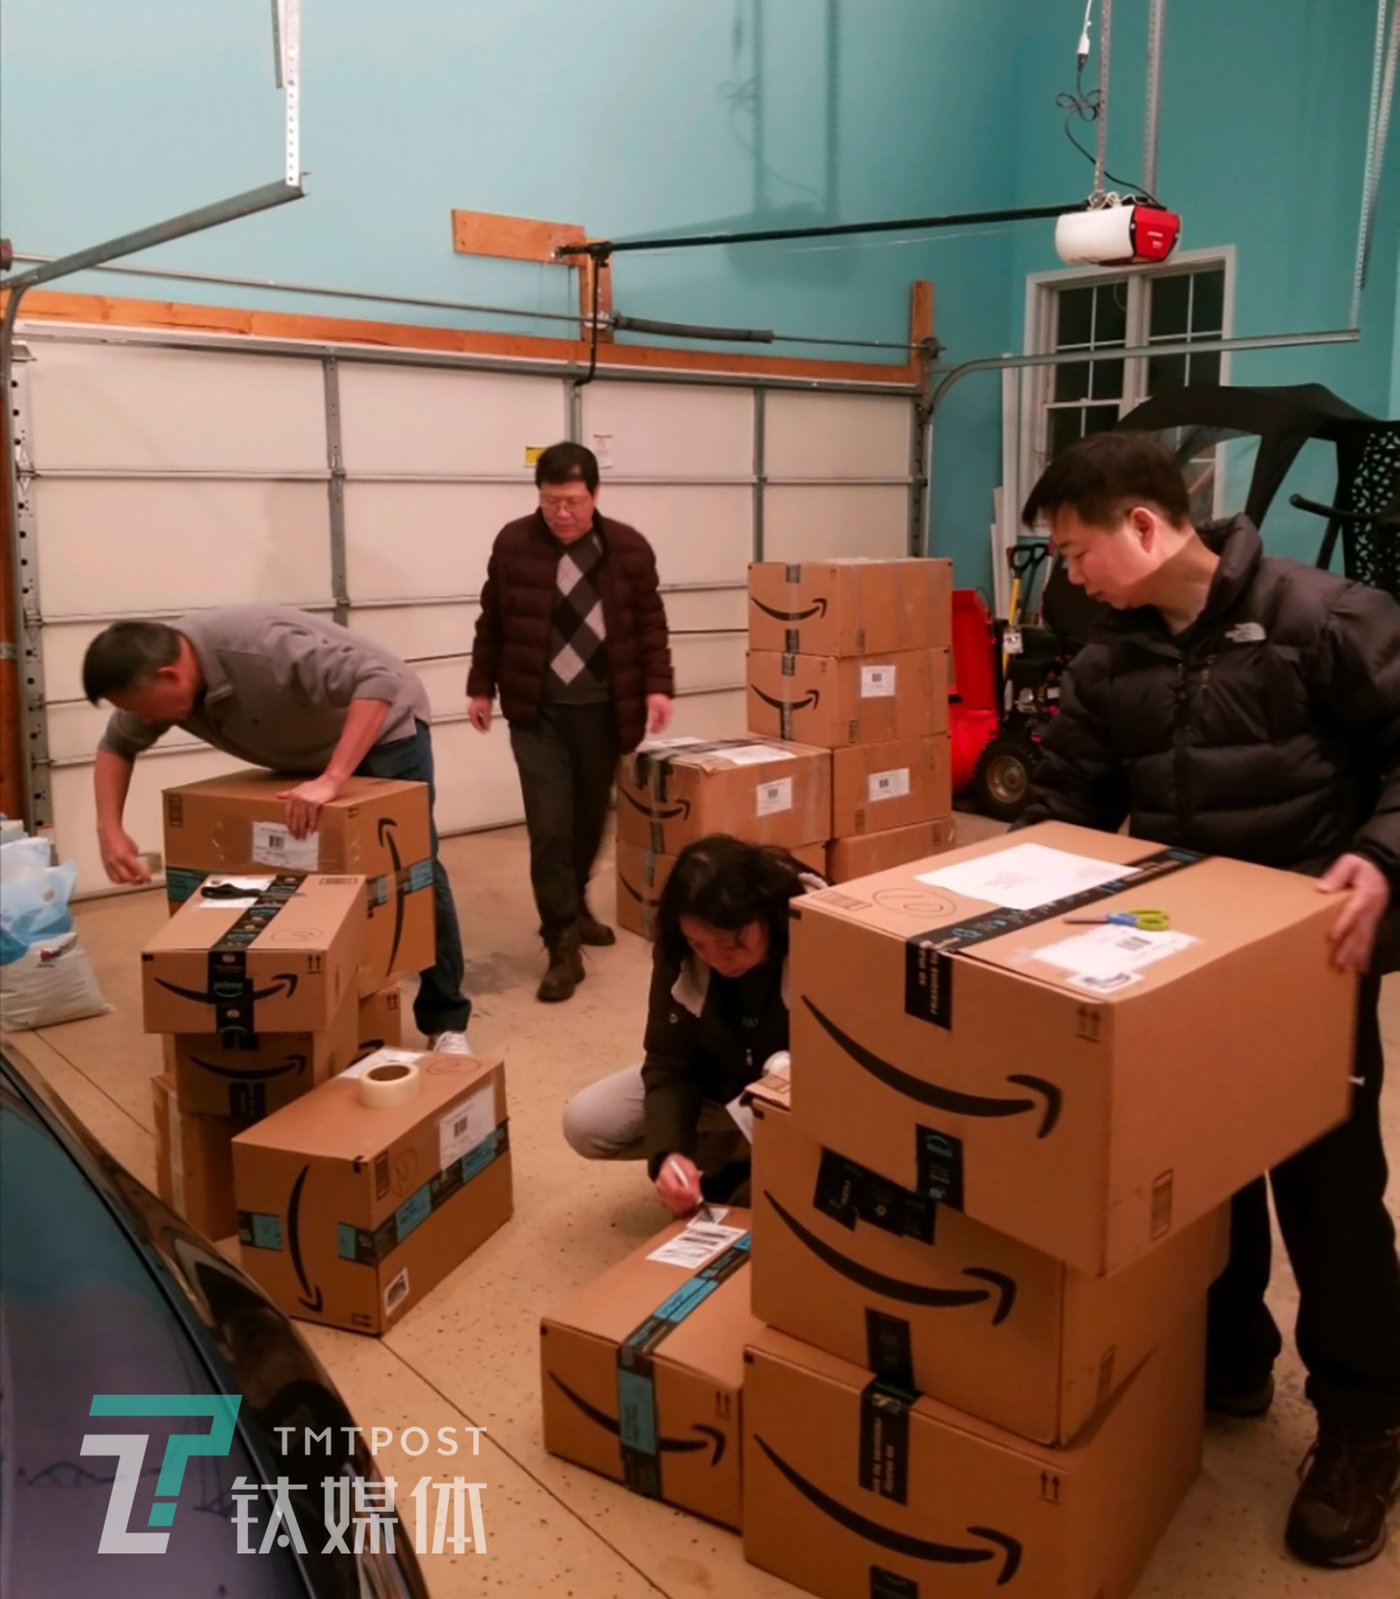 Volunteers from the Orange County Chinese Association pack 60 cases of medical masks to be sent to Wuhan. (Woodbury, N.Y. State, U.S.A., February 6, 2020)